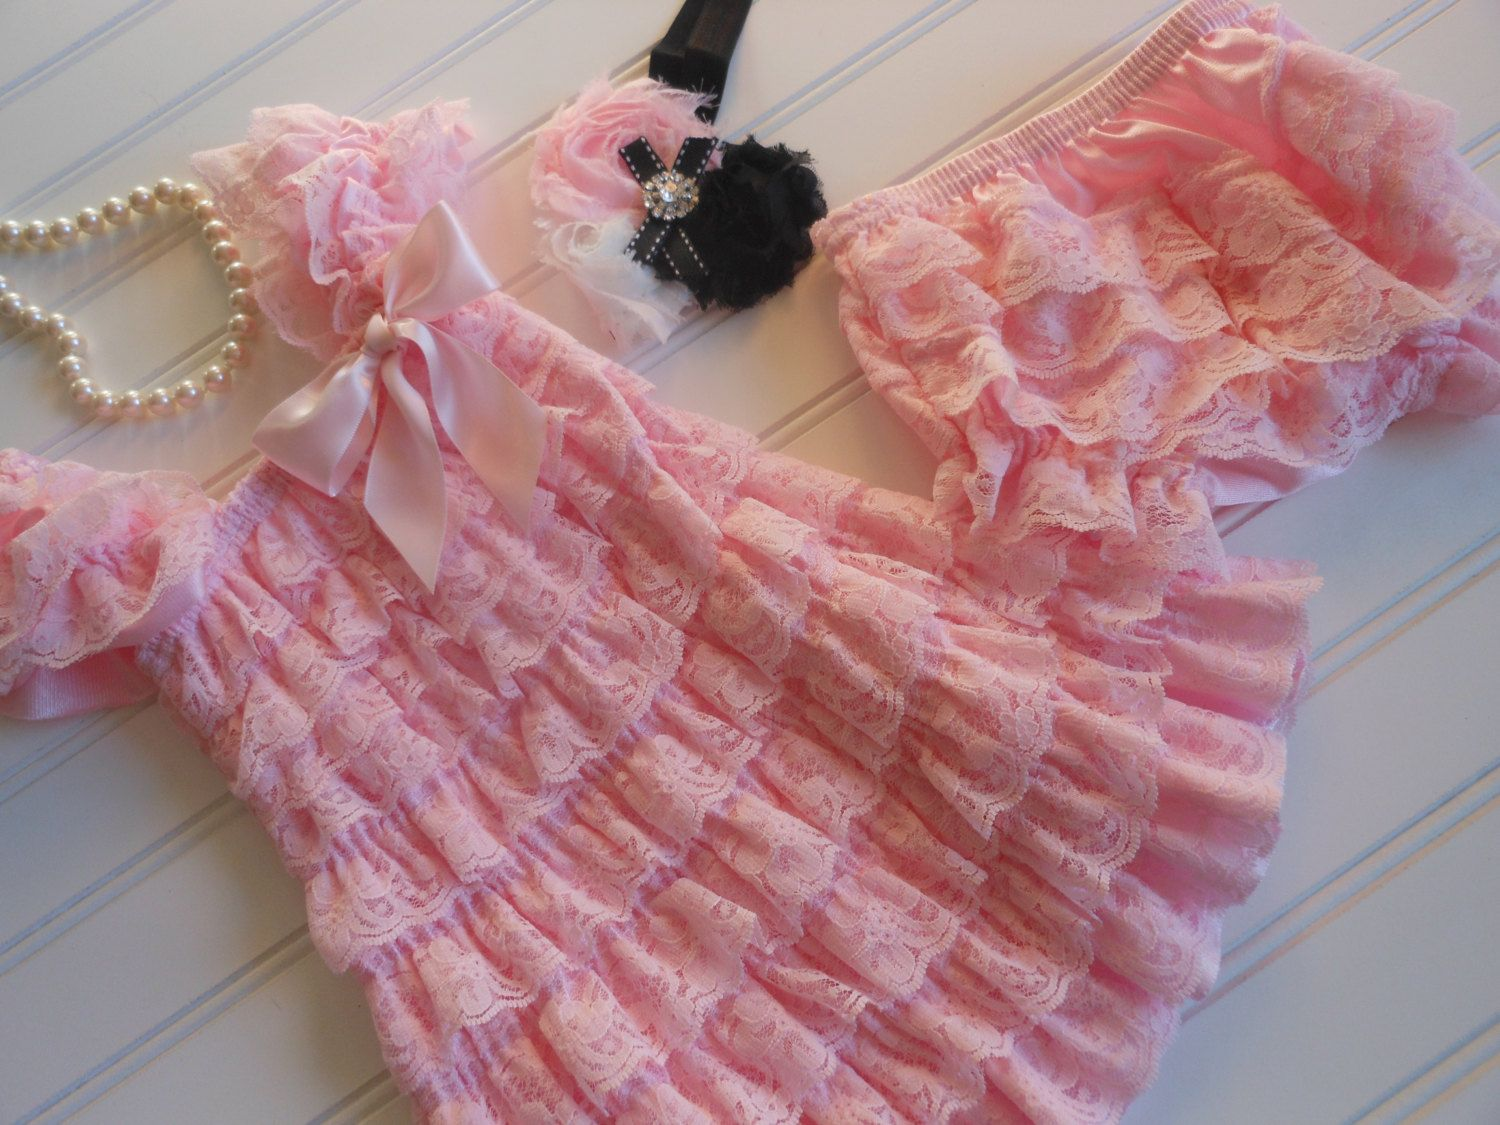 Baby Pink and White Lace Petti Dress with Matching Pink Lace Bloomers and Shabby Chic Hair Bow by ASweetCelebration on Etsy https://www.etsy.com/listing/173754456/baby-pink-and-white-lace-petti-dress